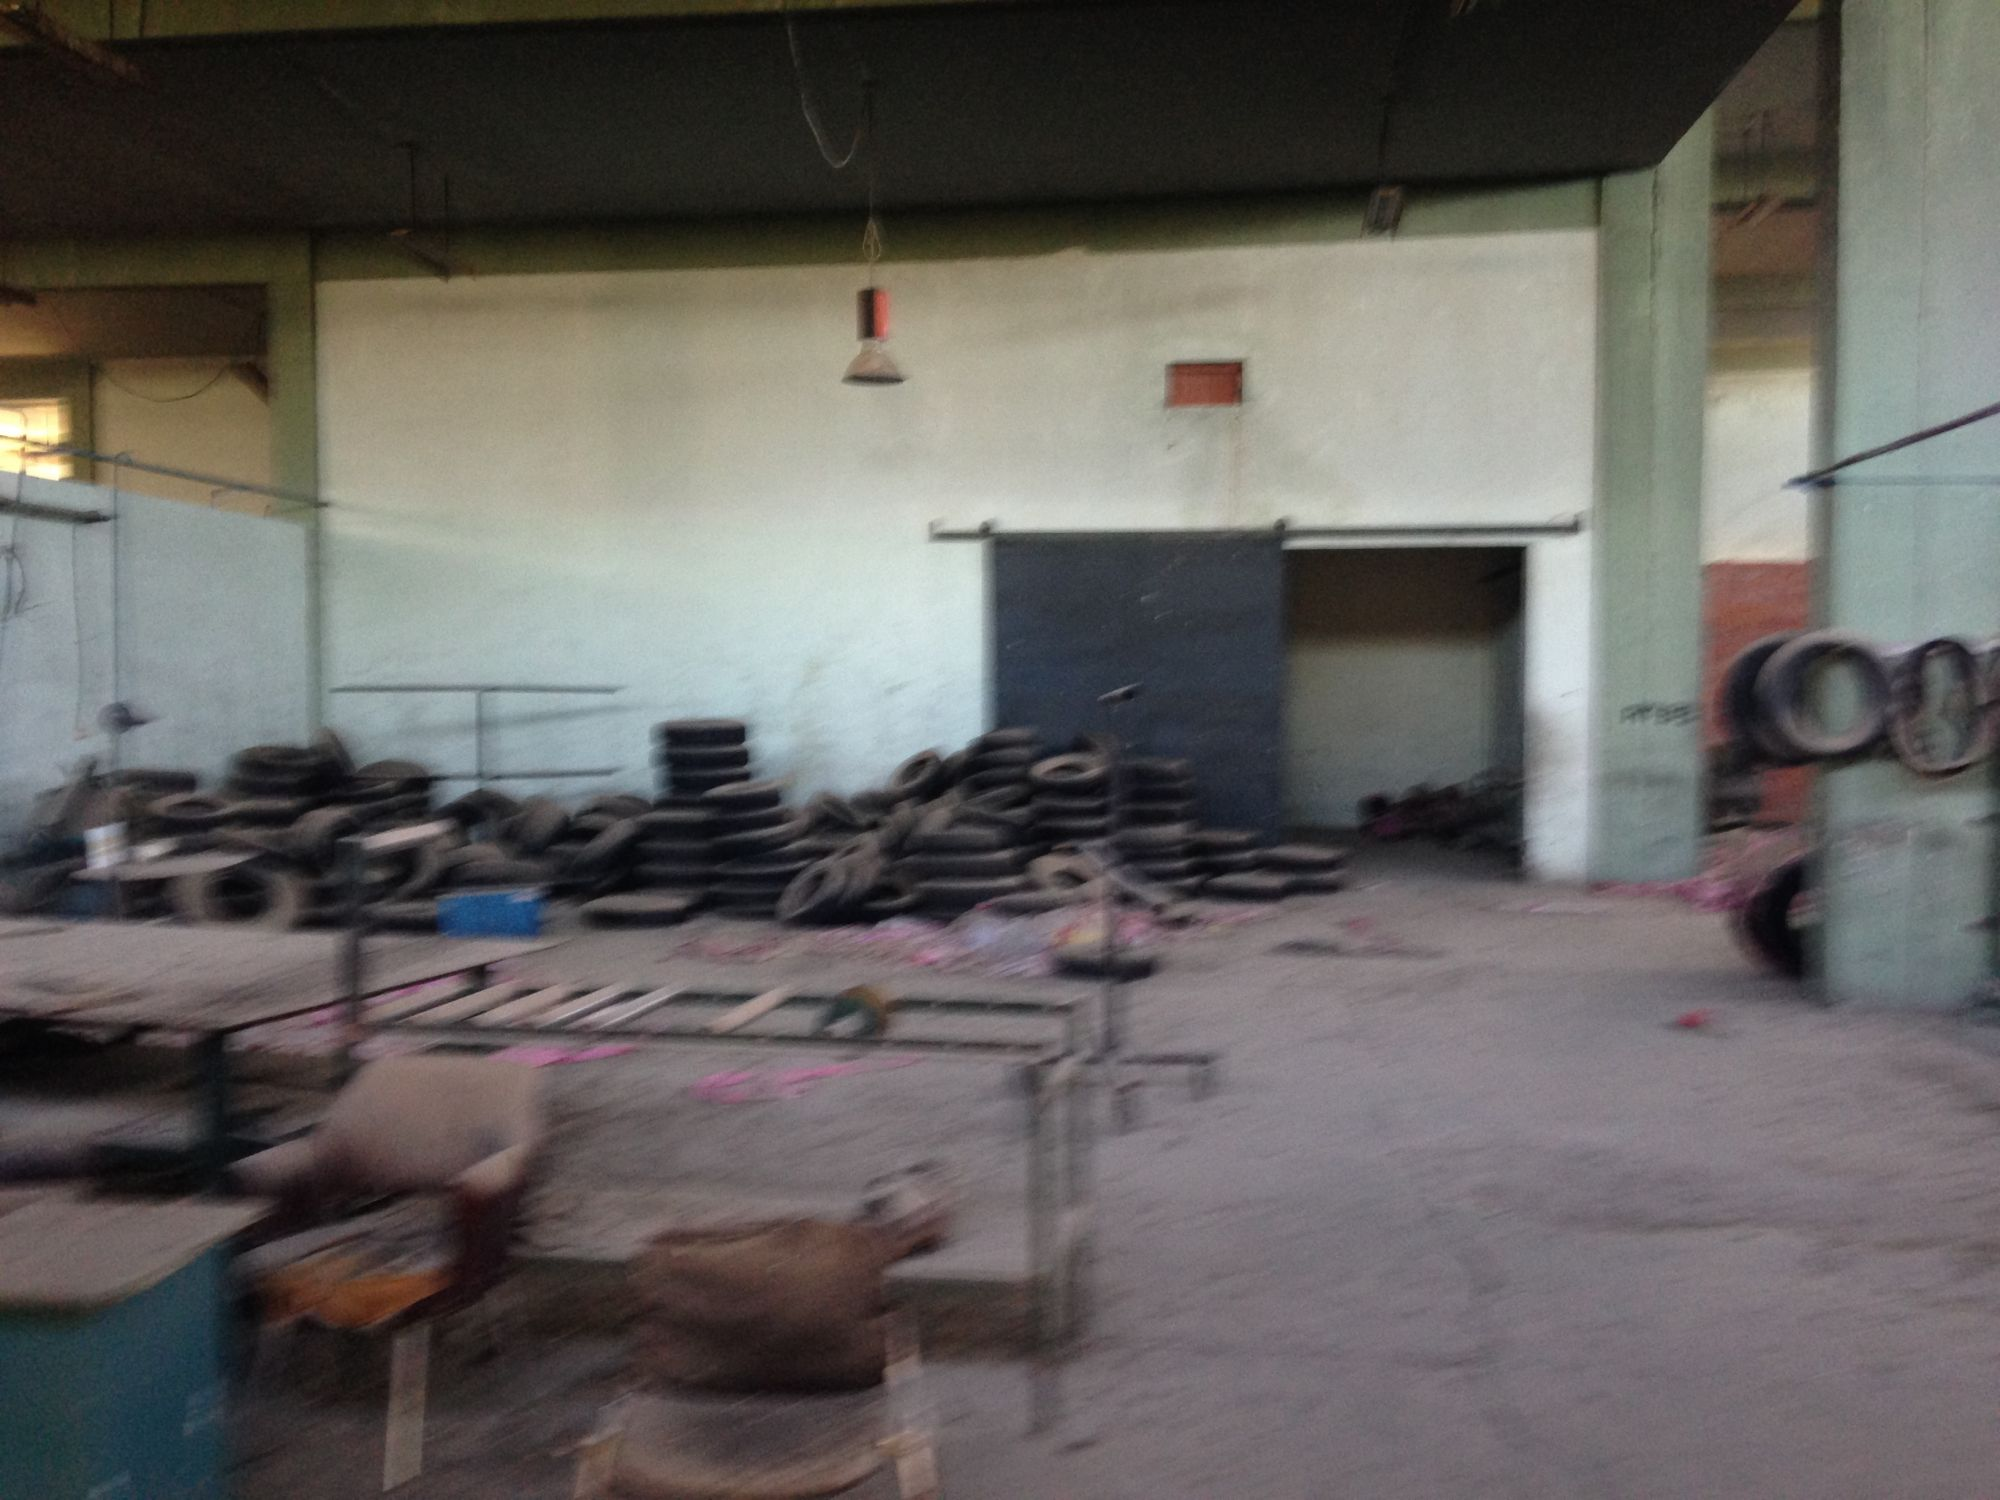 Local industriel 2000 zaghouan nord vente local for Agence immobiliere zaghouan